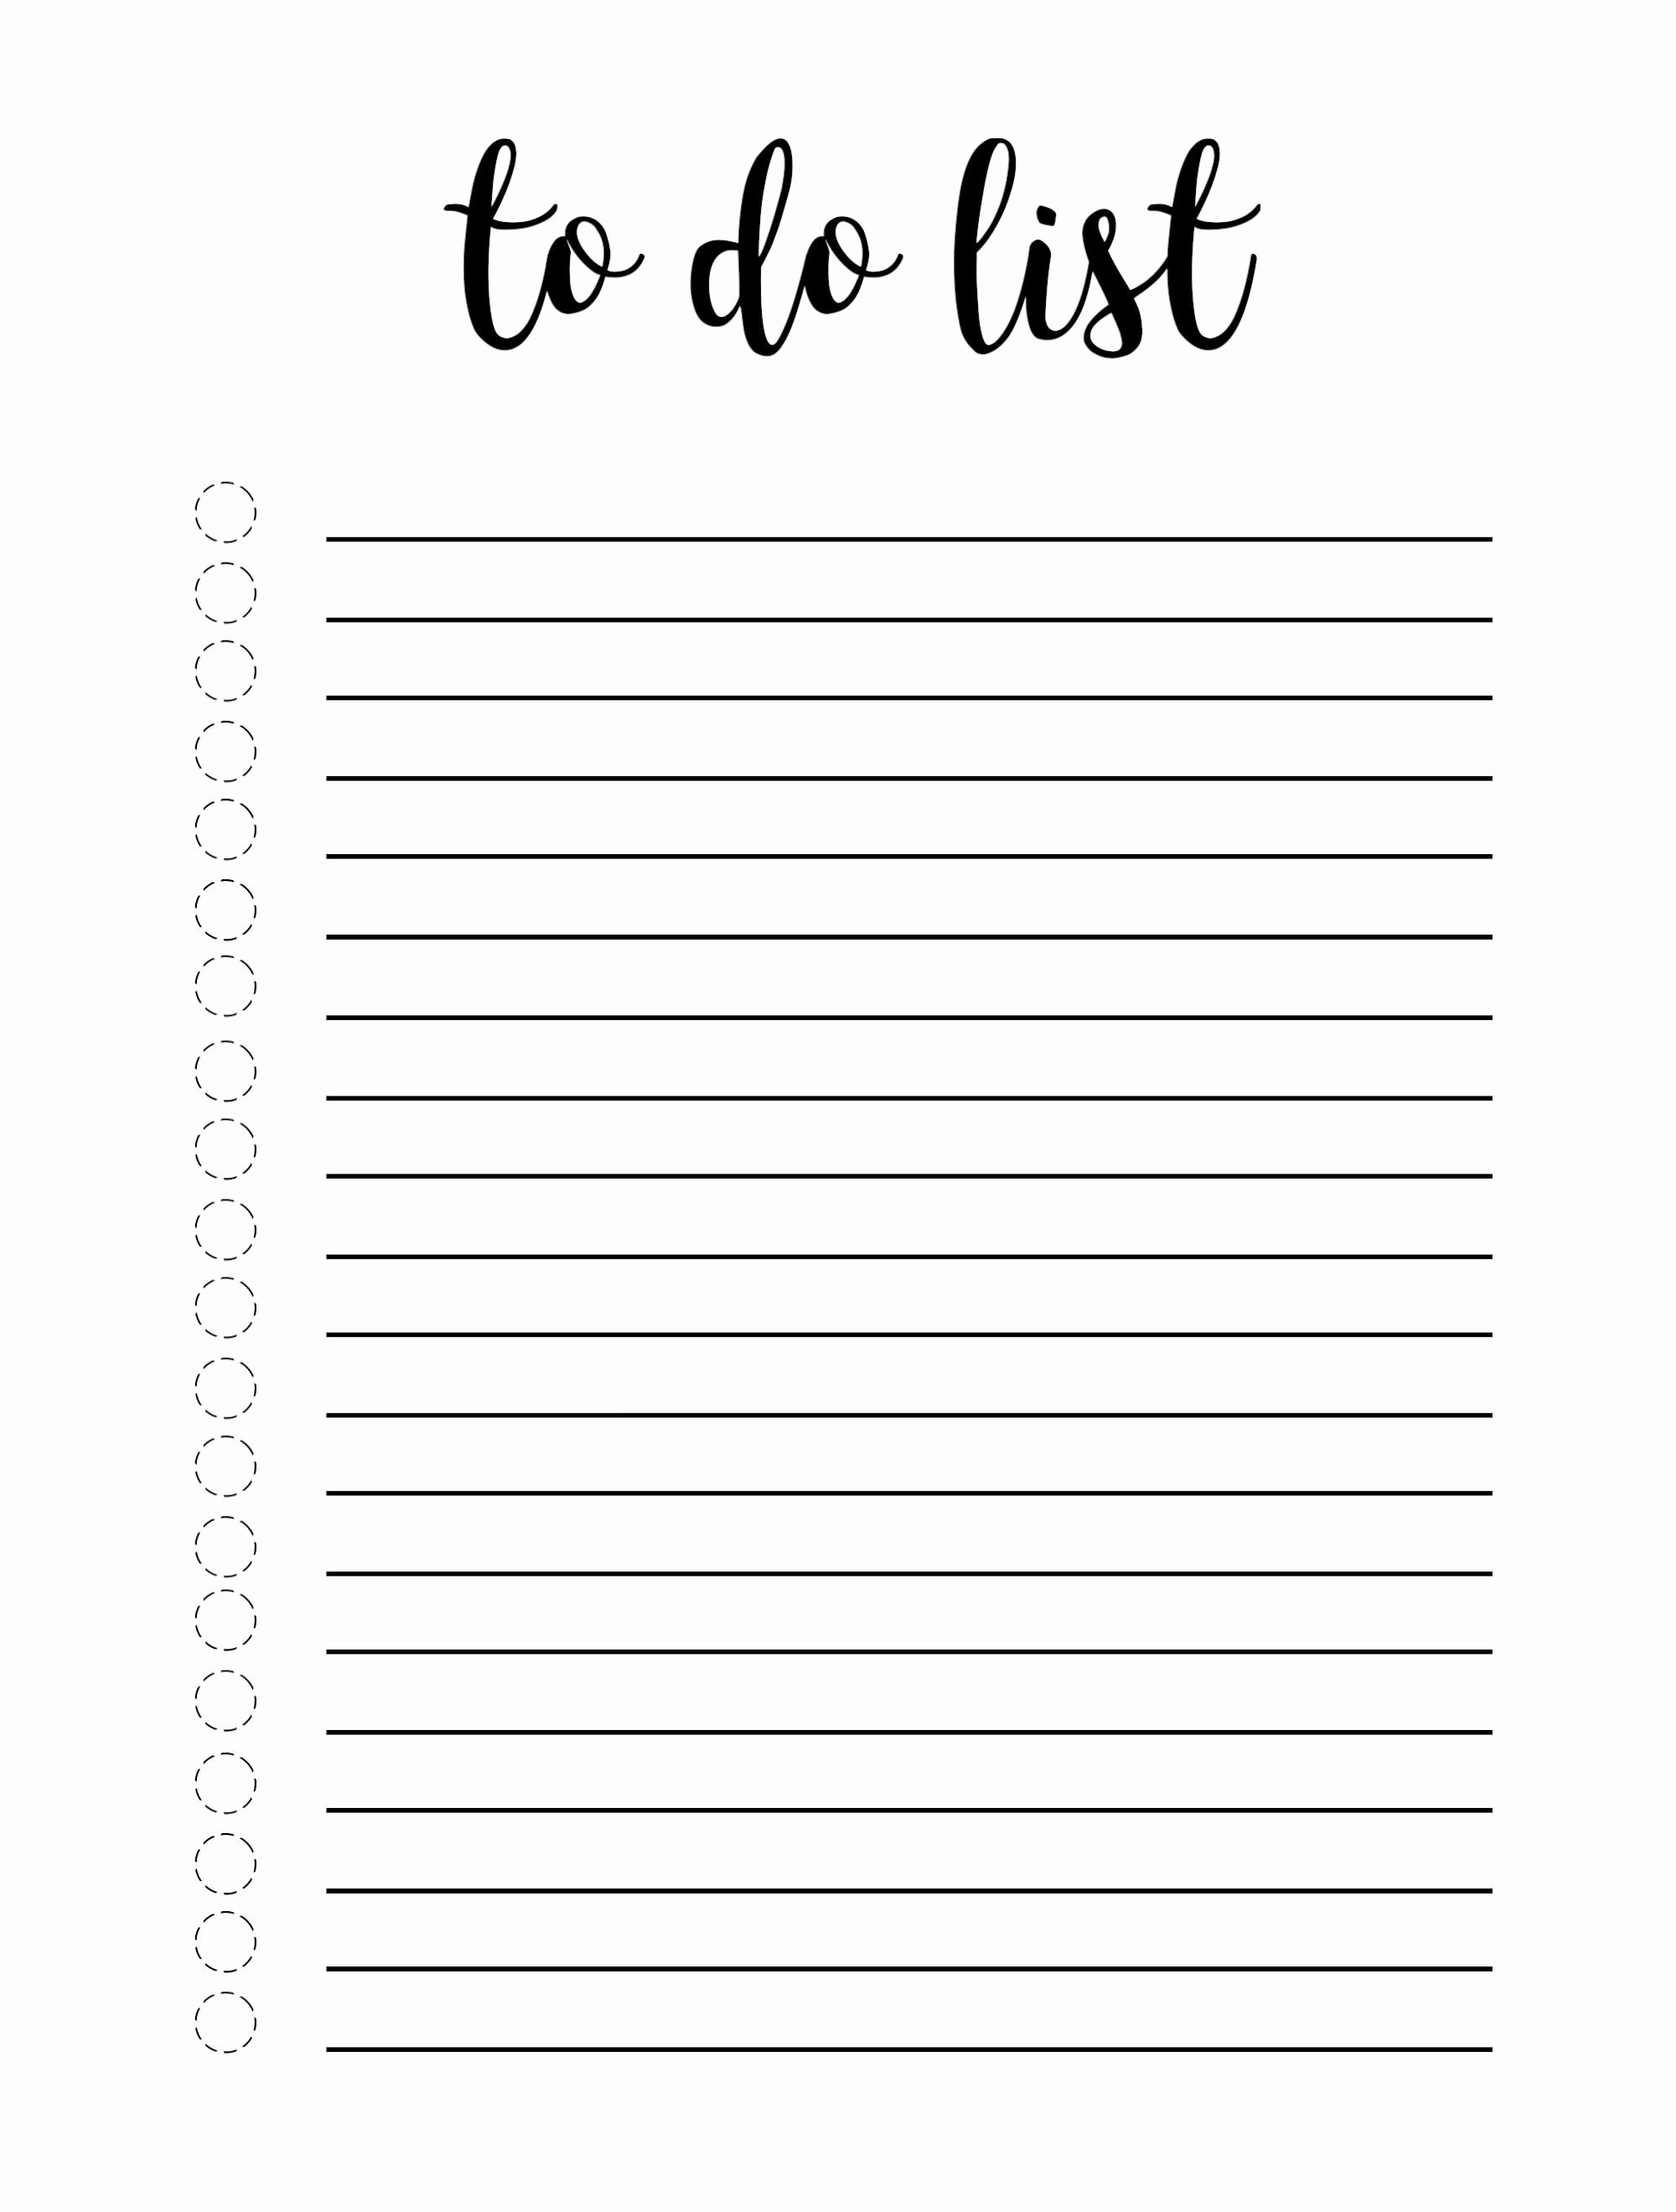 Cute to Do List Template Word Best Of Cute to Do List Template Word Excel E Platform for